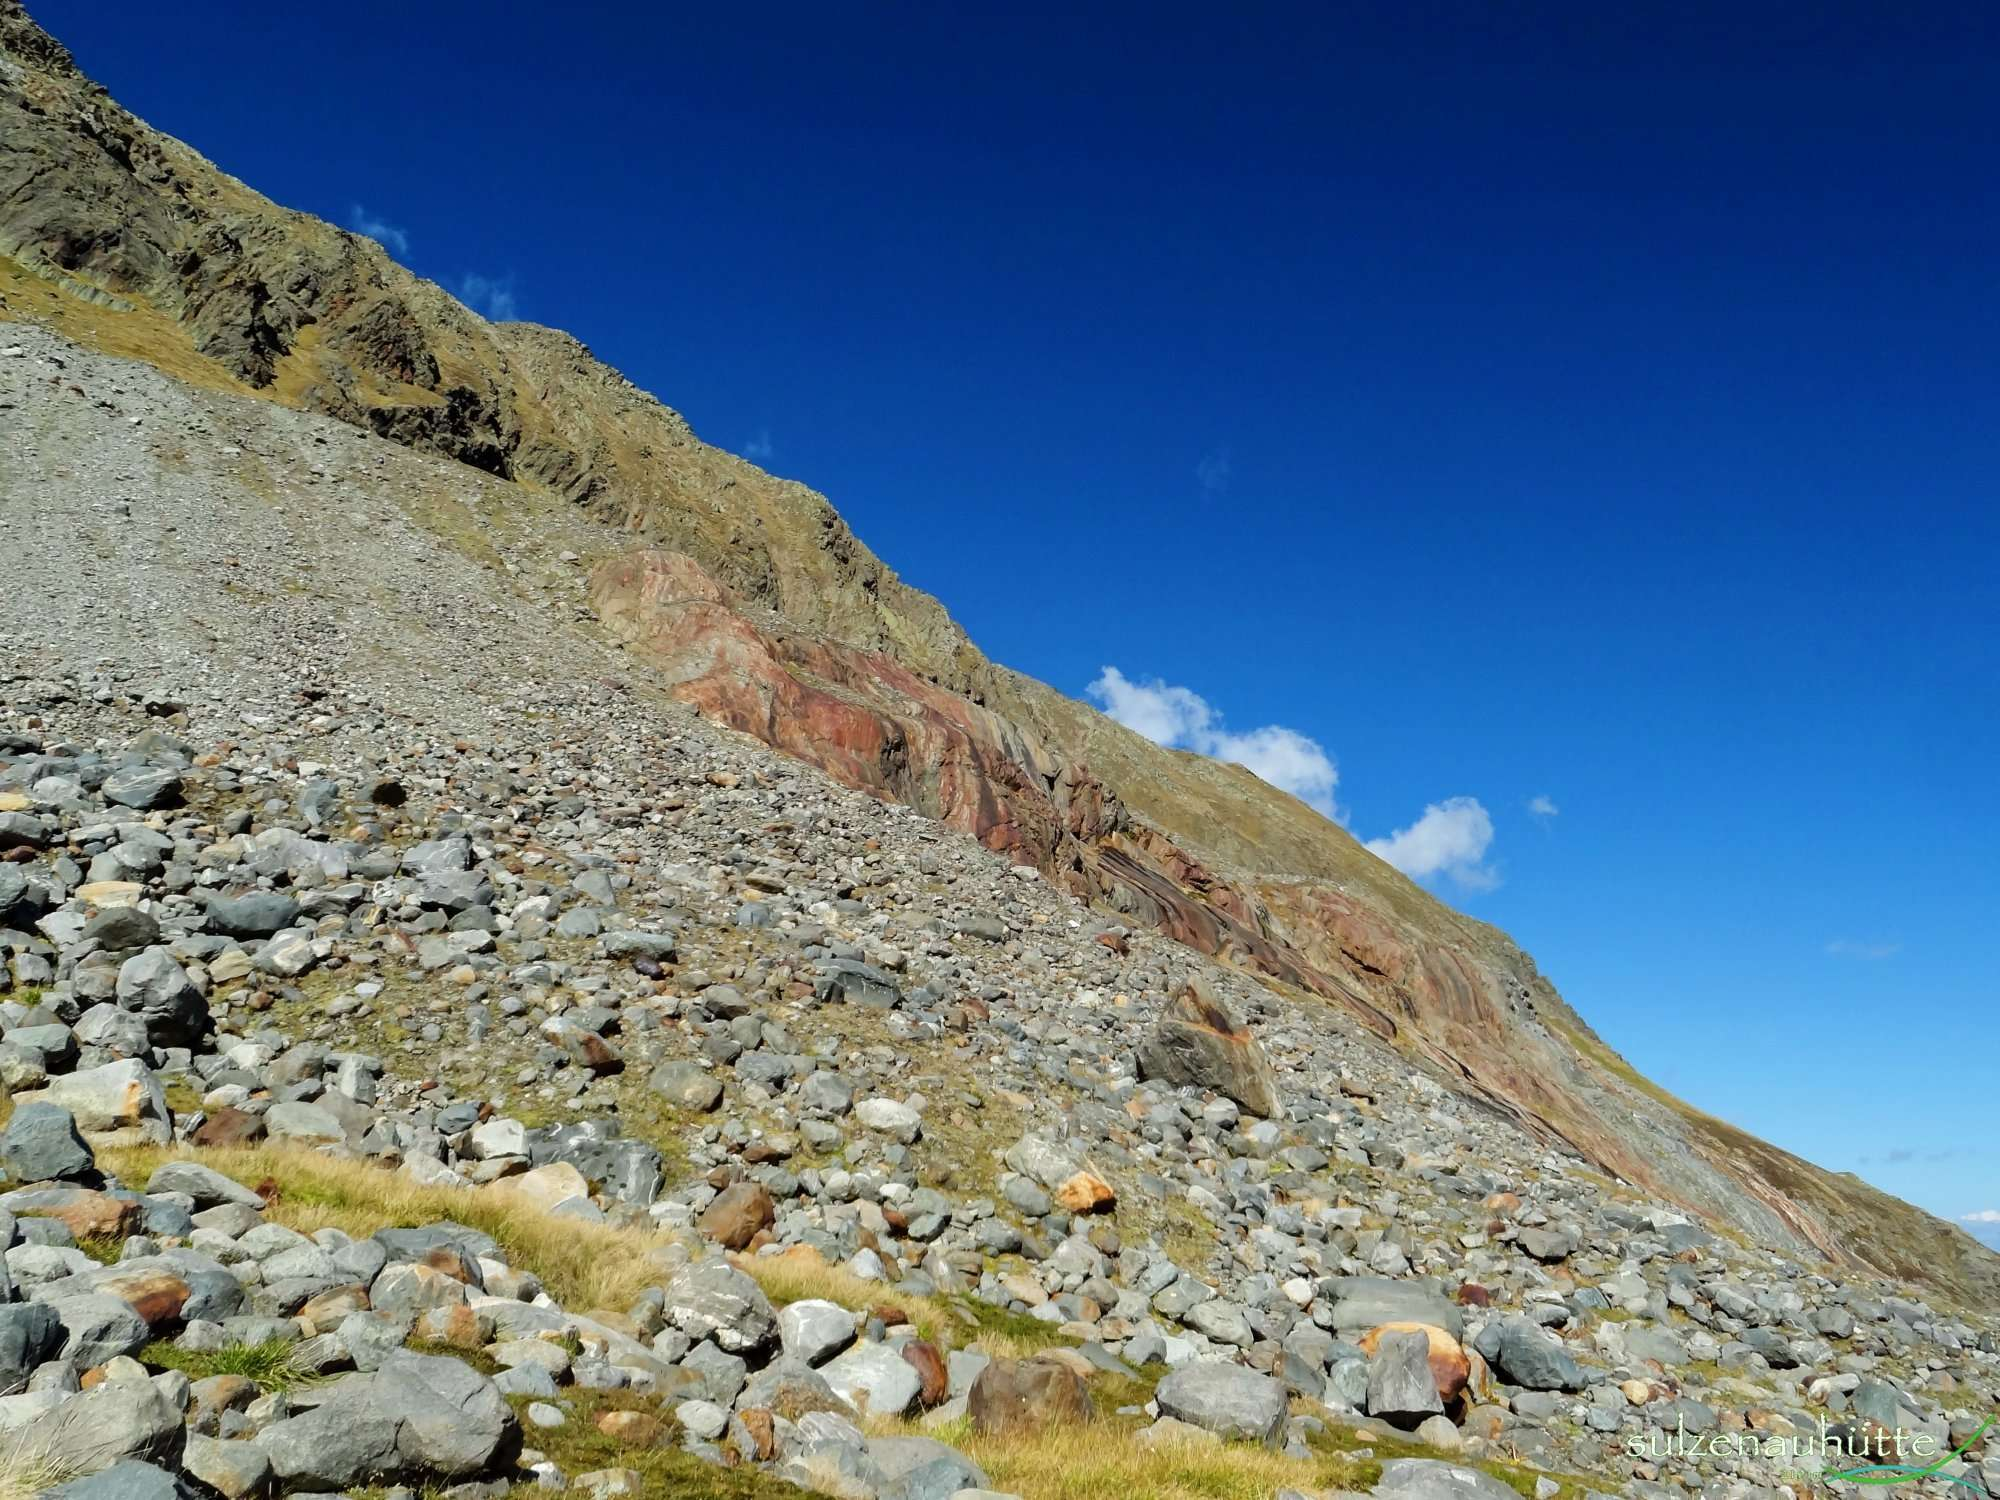 Glacially eroded rocks on Peiljoch trail - Stubai High Trail